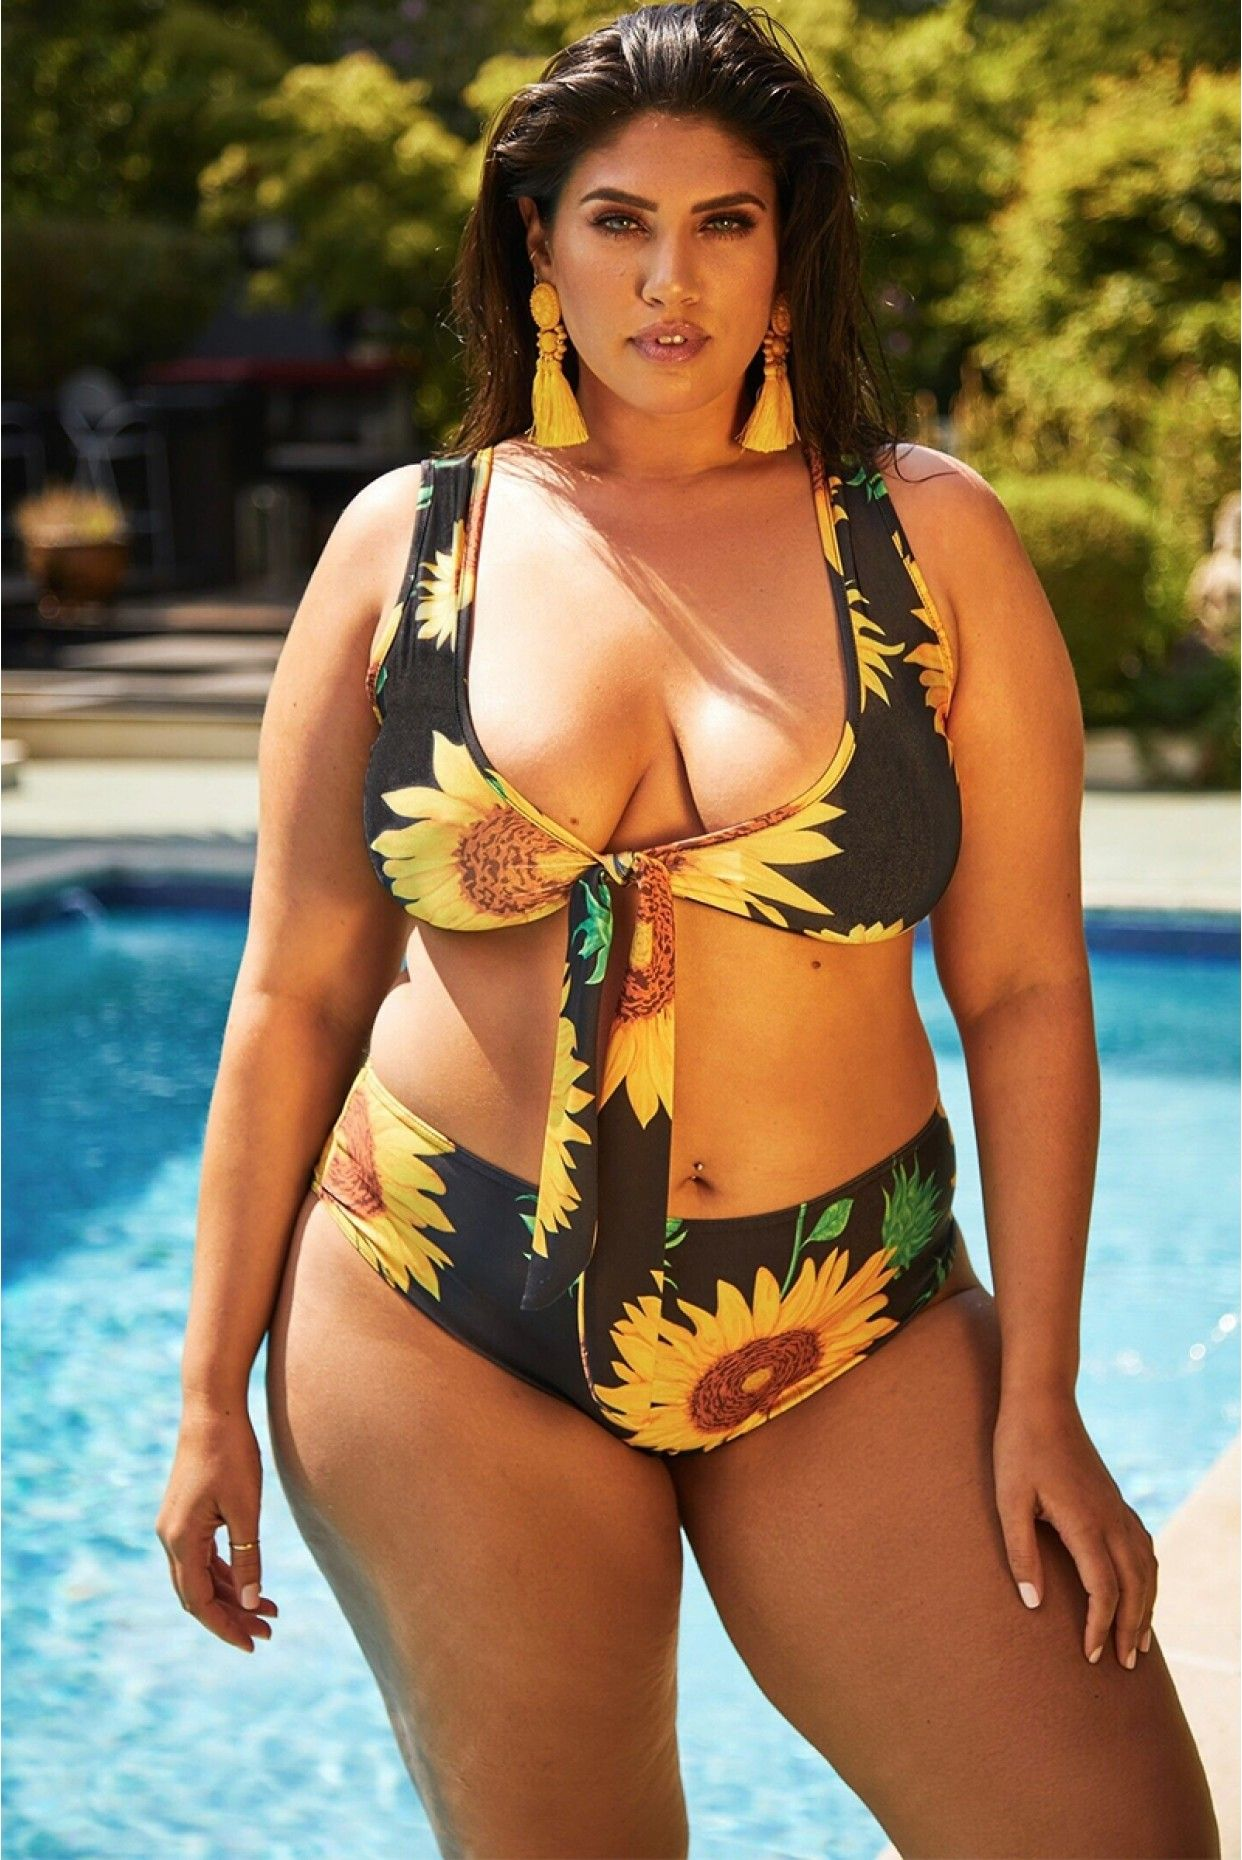 e60ad773980 Curvy Girl! Sunflower Bathing Suit | Fashionista | Curvy swimwear ...